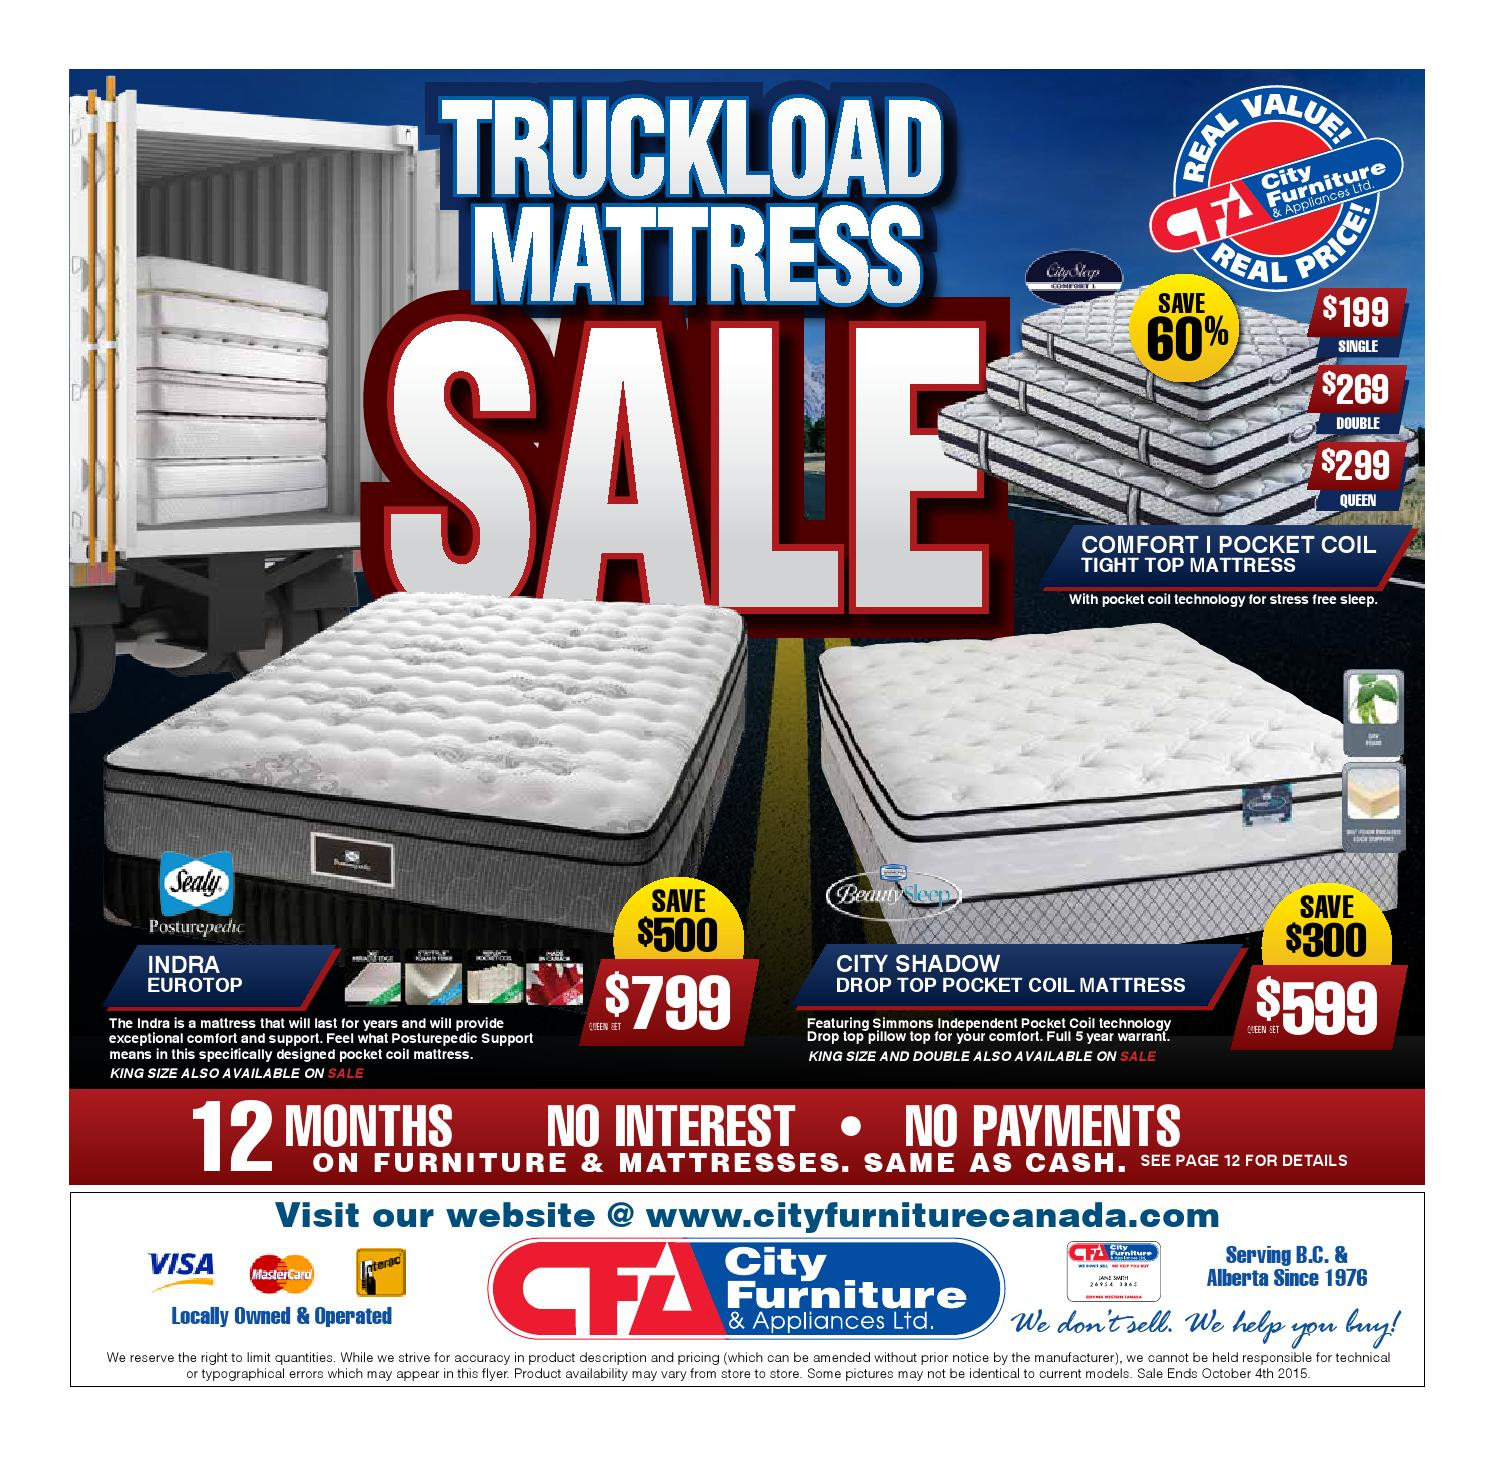 City Furniture Amp Appliances Truck Load Mattress Sale